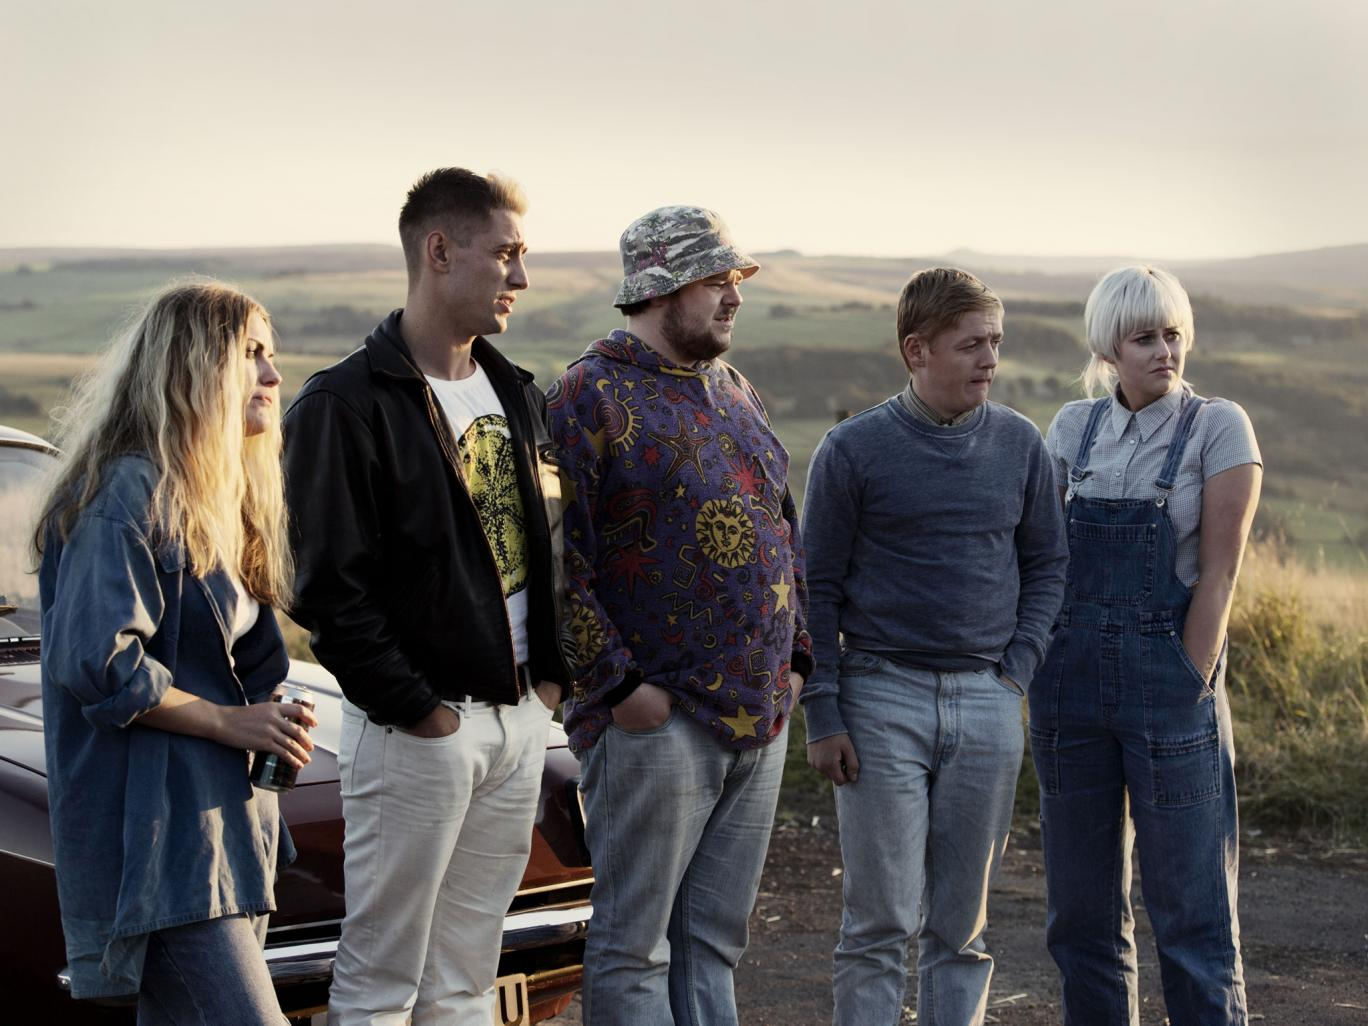 The cast of This Is England